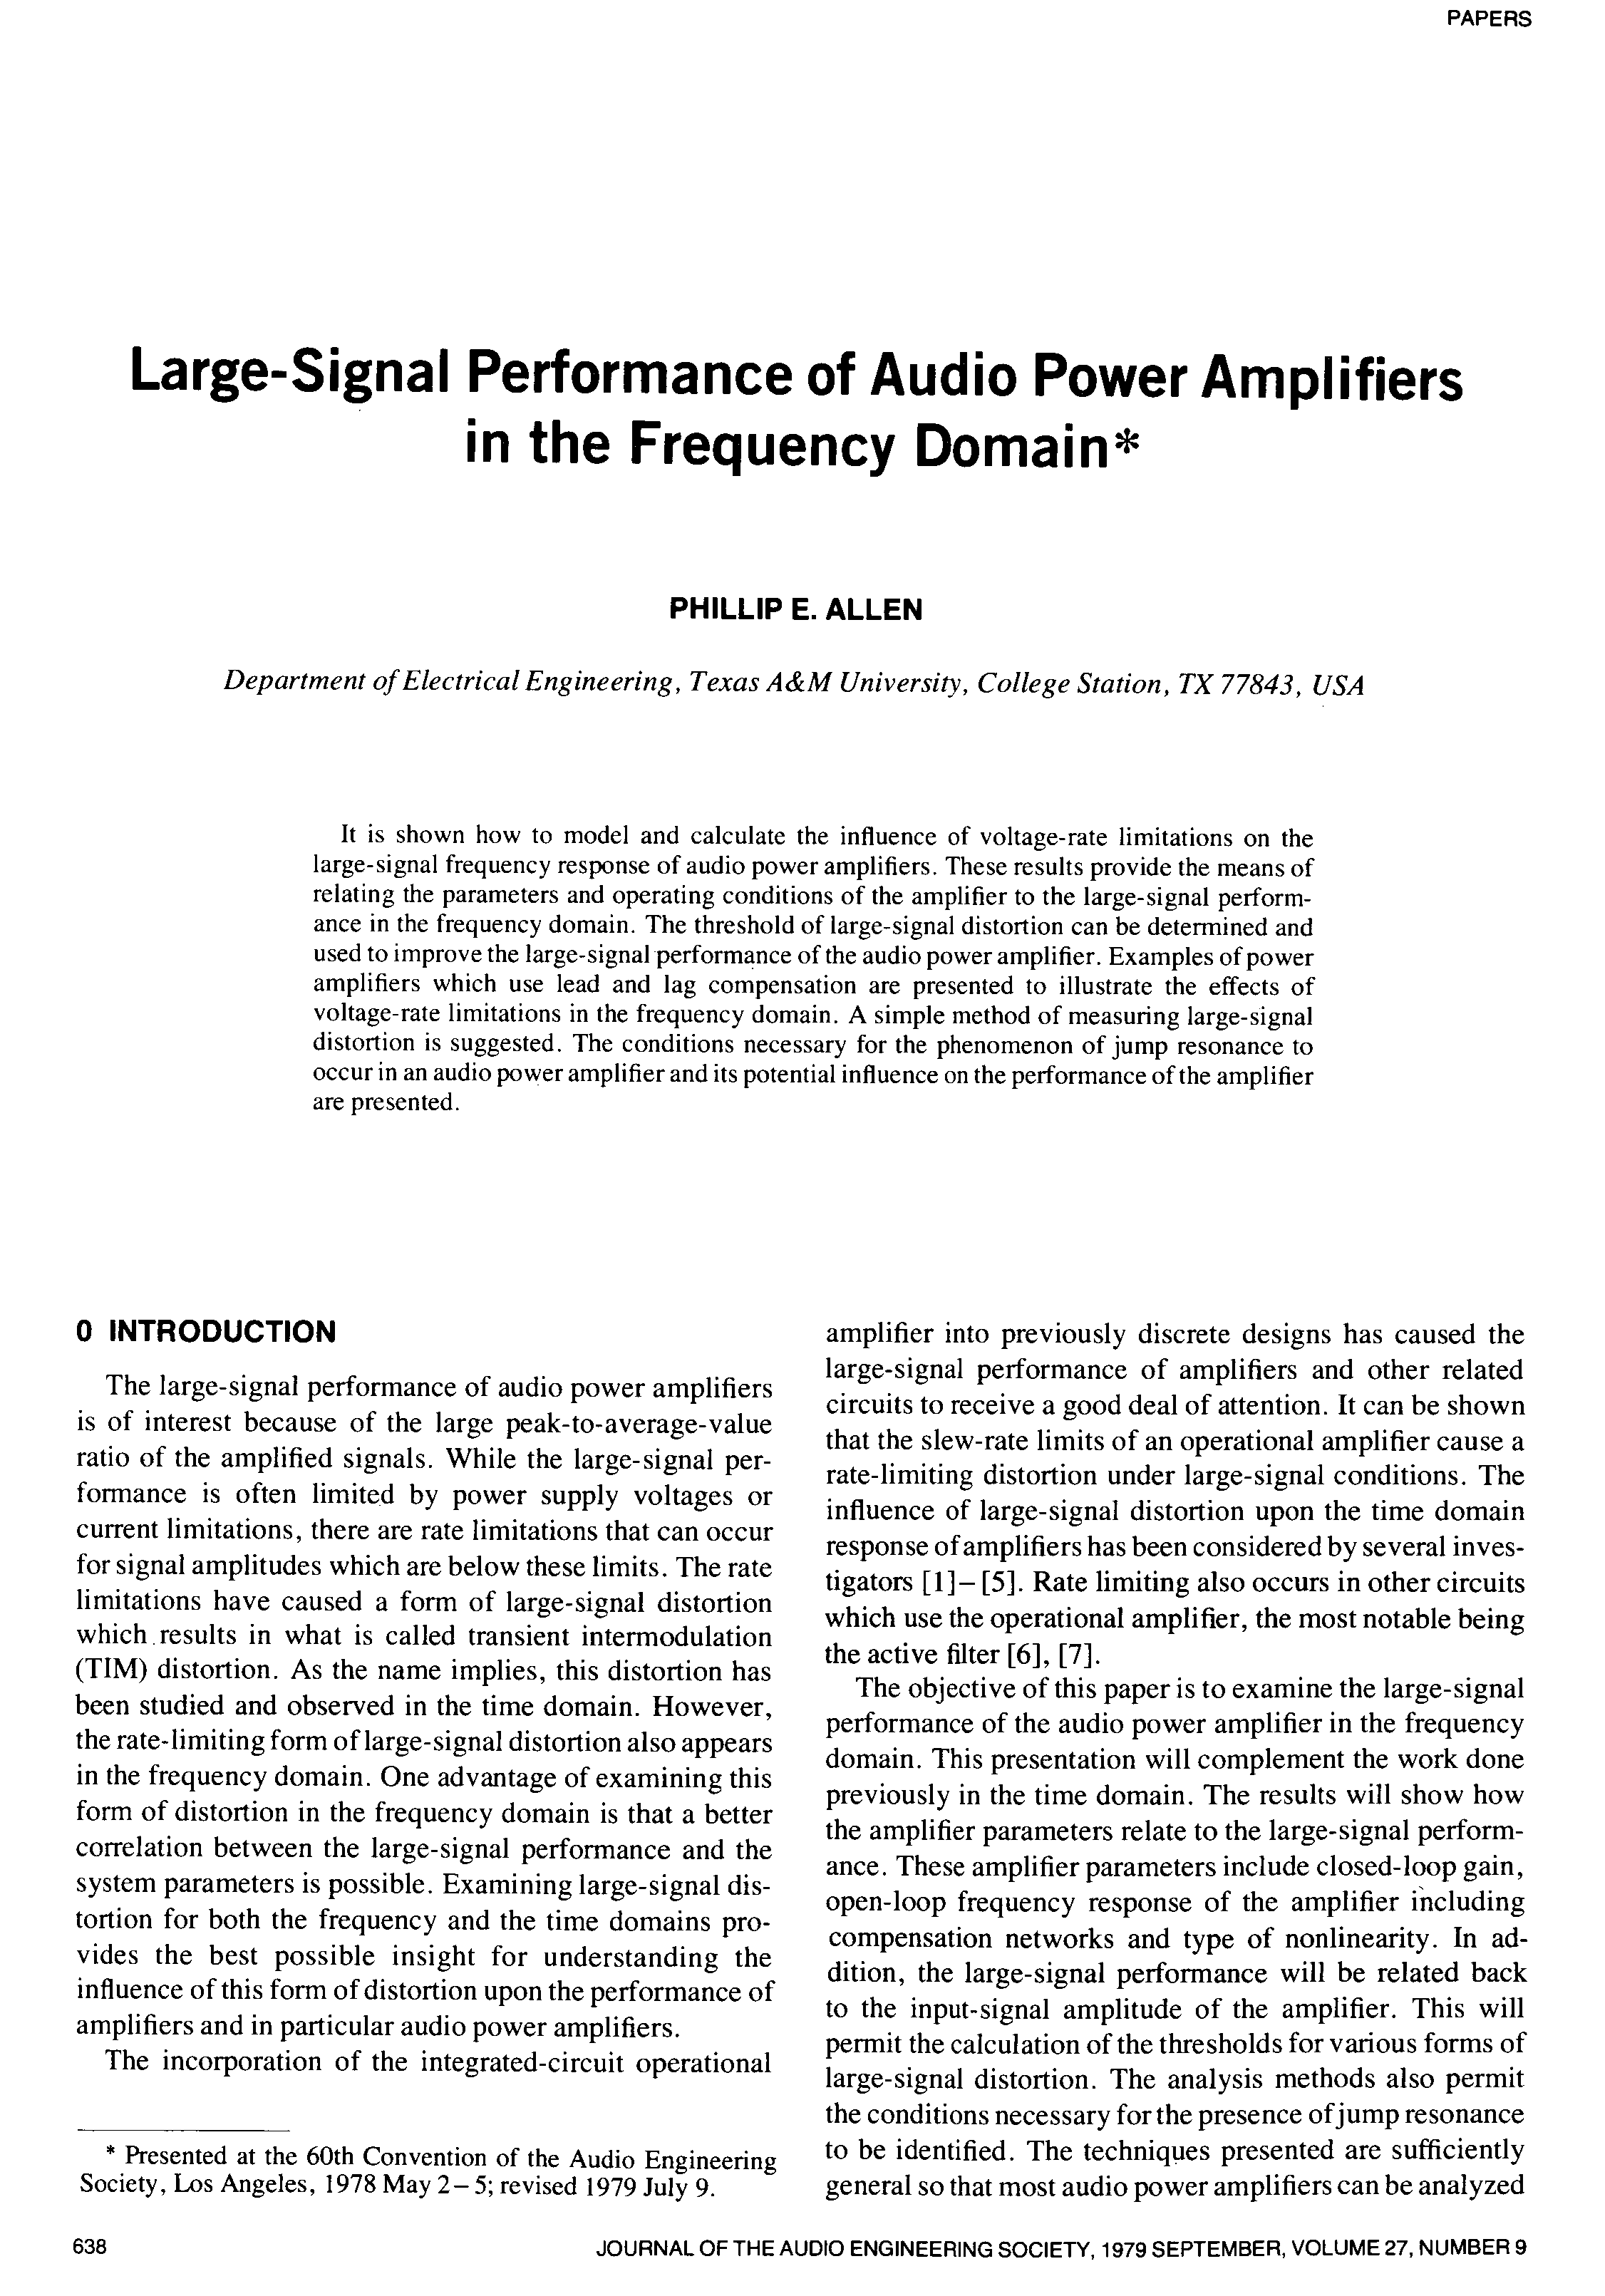 AES E-Library » Large Signal Performance of Audio Power Amplifiers in the  Frequency Domain